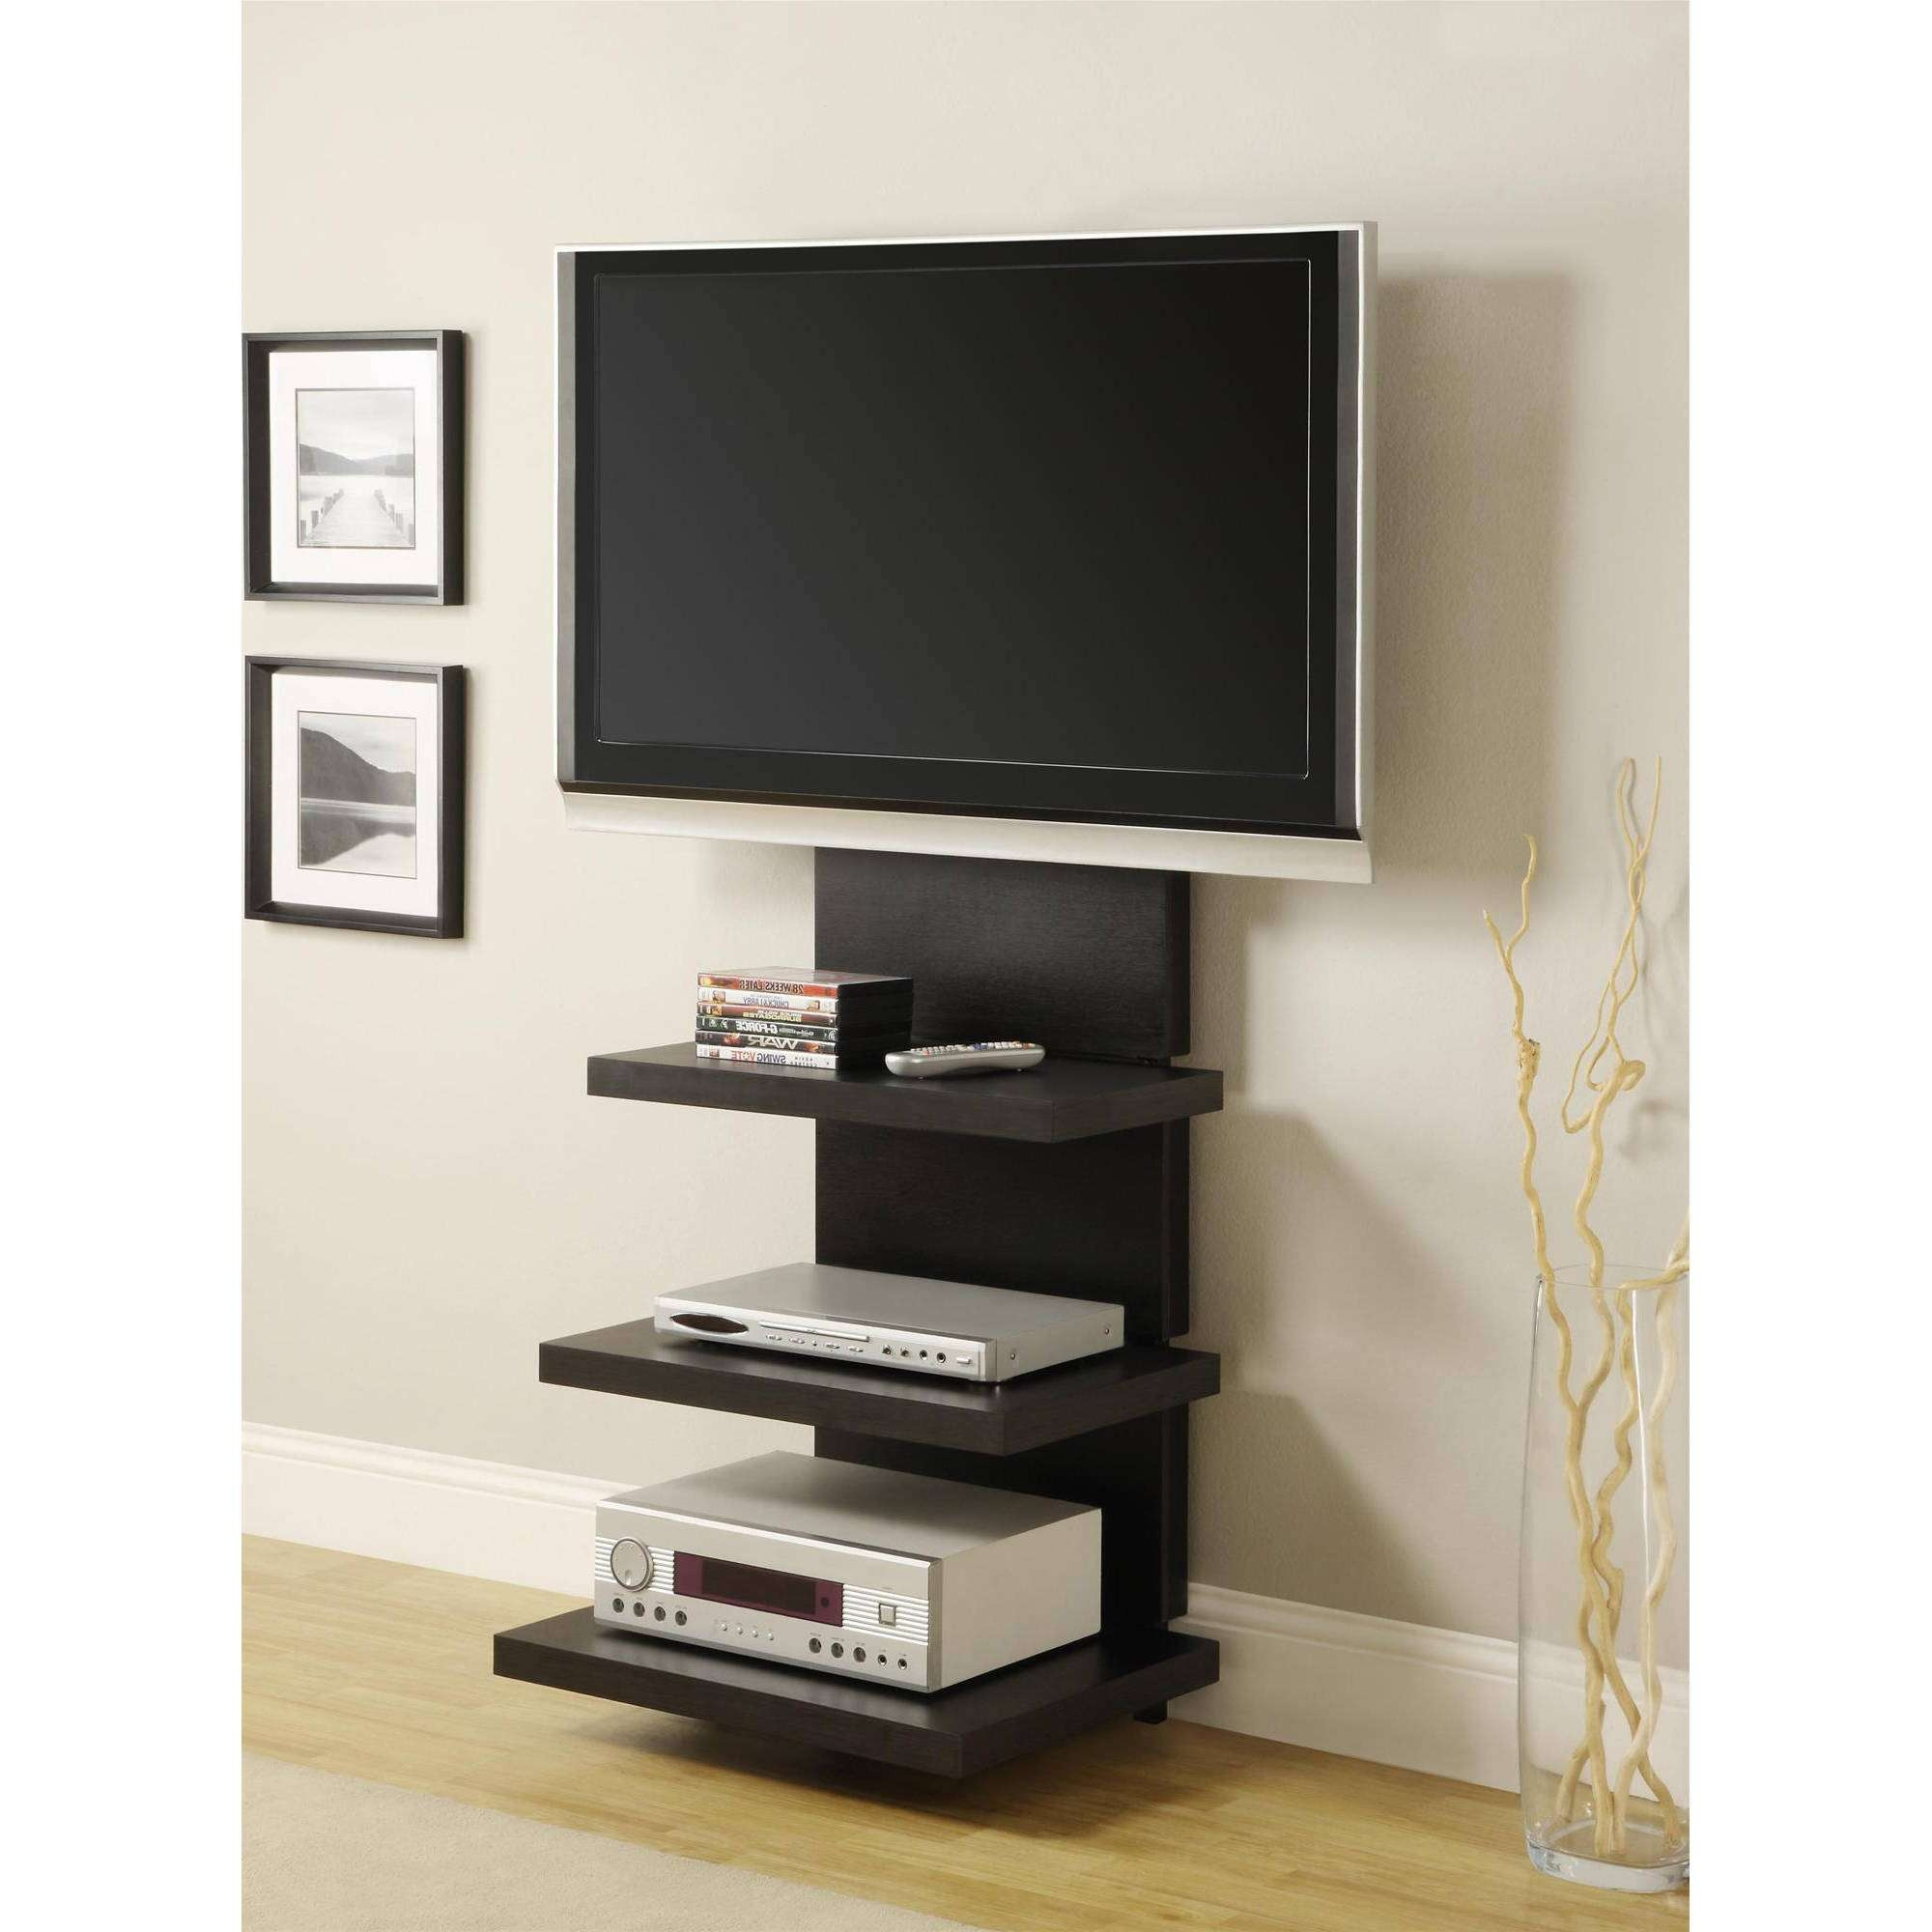 Ameriwood Home Elevation Altramount Tv Stand For Tvs Up To 60 Throughout Elevated Tv Stands (View 4 of 15)